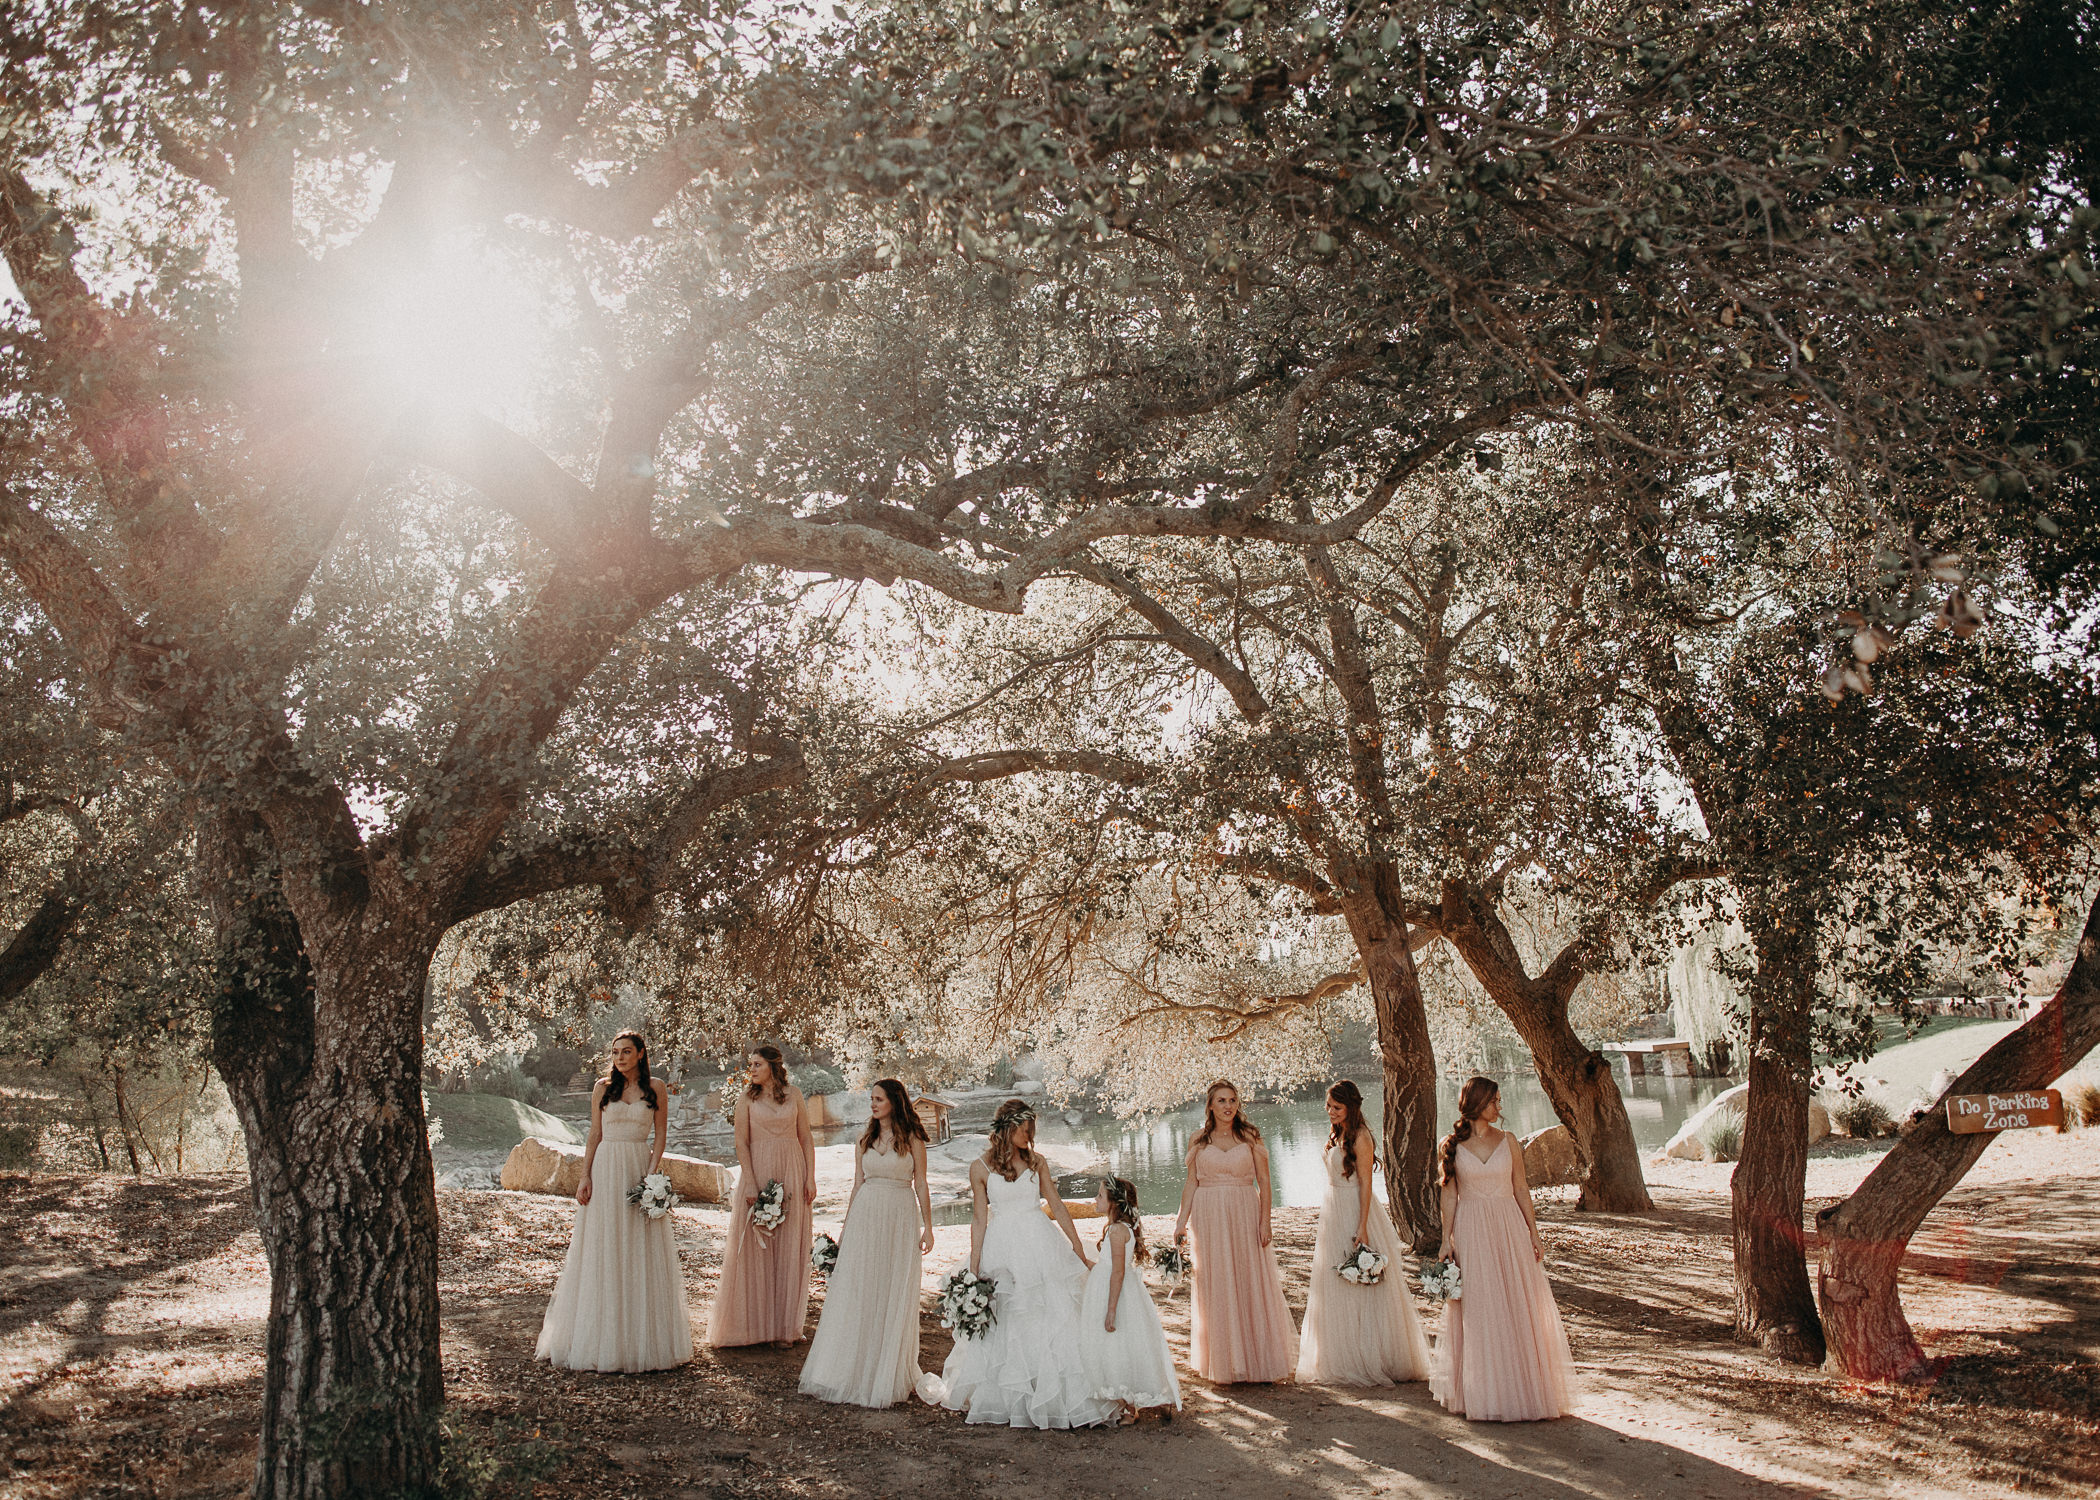 81 - Wedding details - Portraits : Bride and groom and bridal party : wedding venue San Diego - Milagro Winery Ramona - CA - Atlanta Wedding Photographer .jpg.JPG